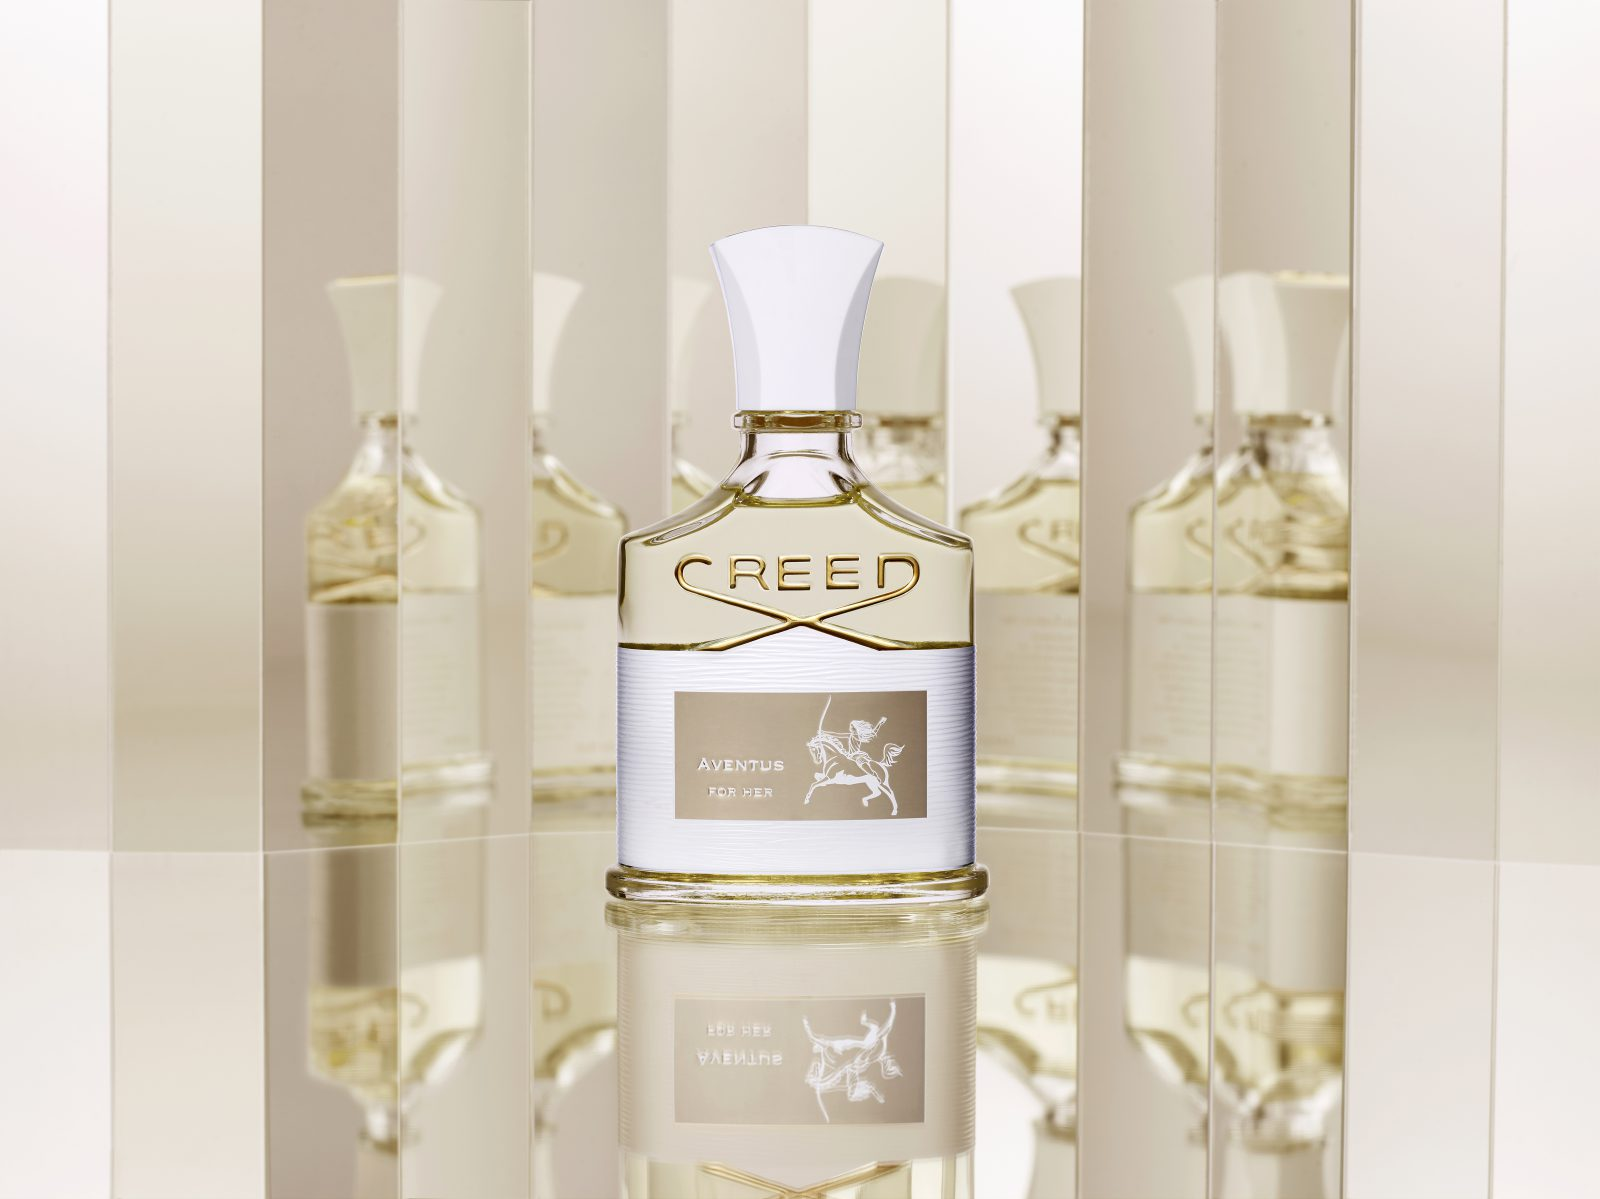 THE HOUSE OF CREED DEBUTS AVENTUS FOR HER